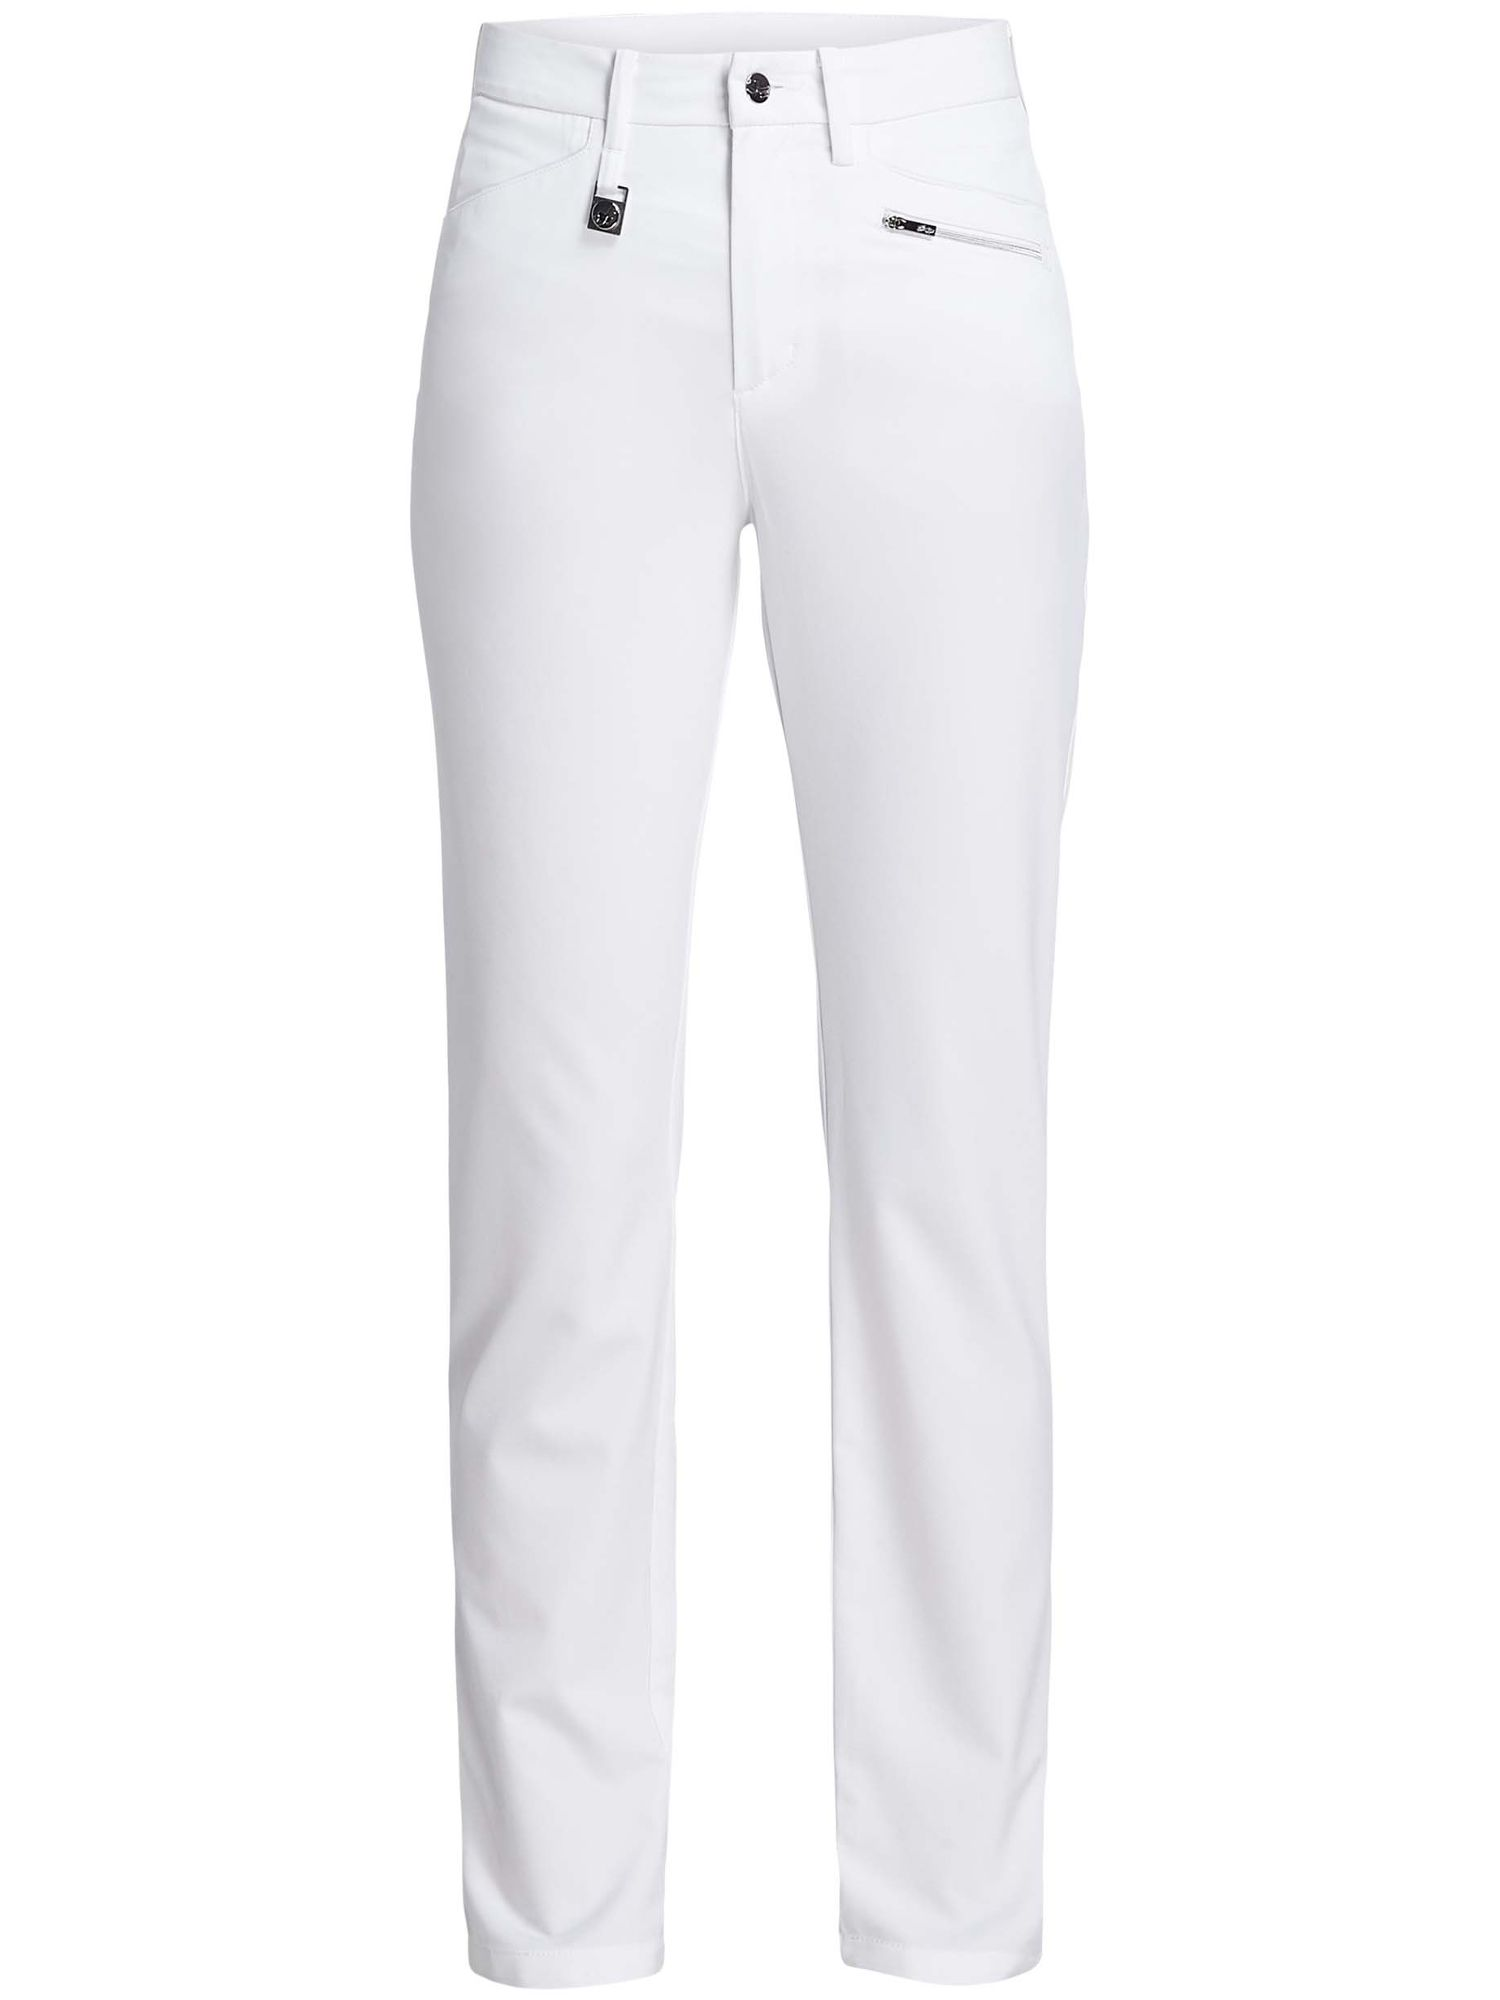 Rohnisch Comfort Stretch Trouser, White